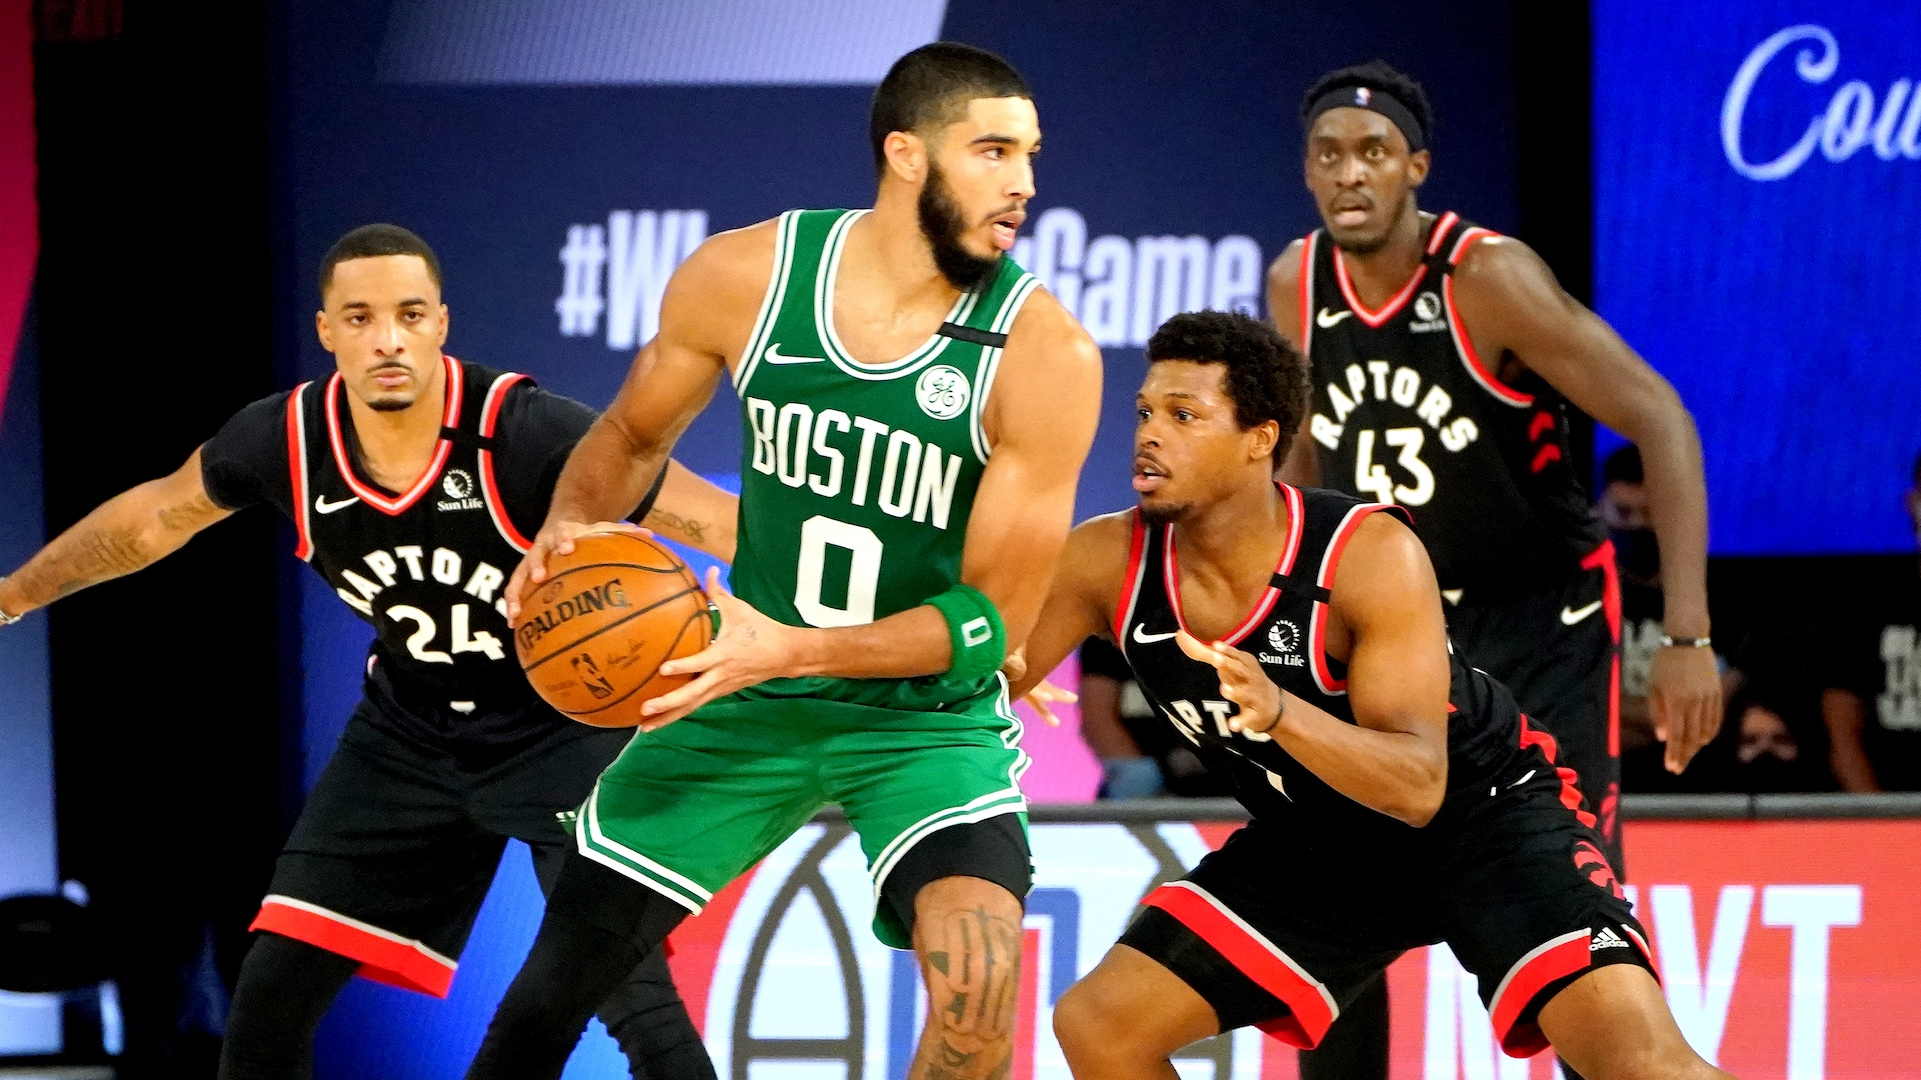 Raptors' quick hands disrupt Celtics' race to conference final